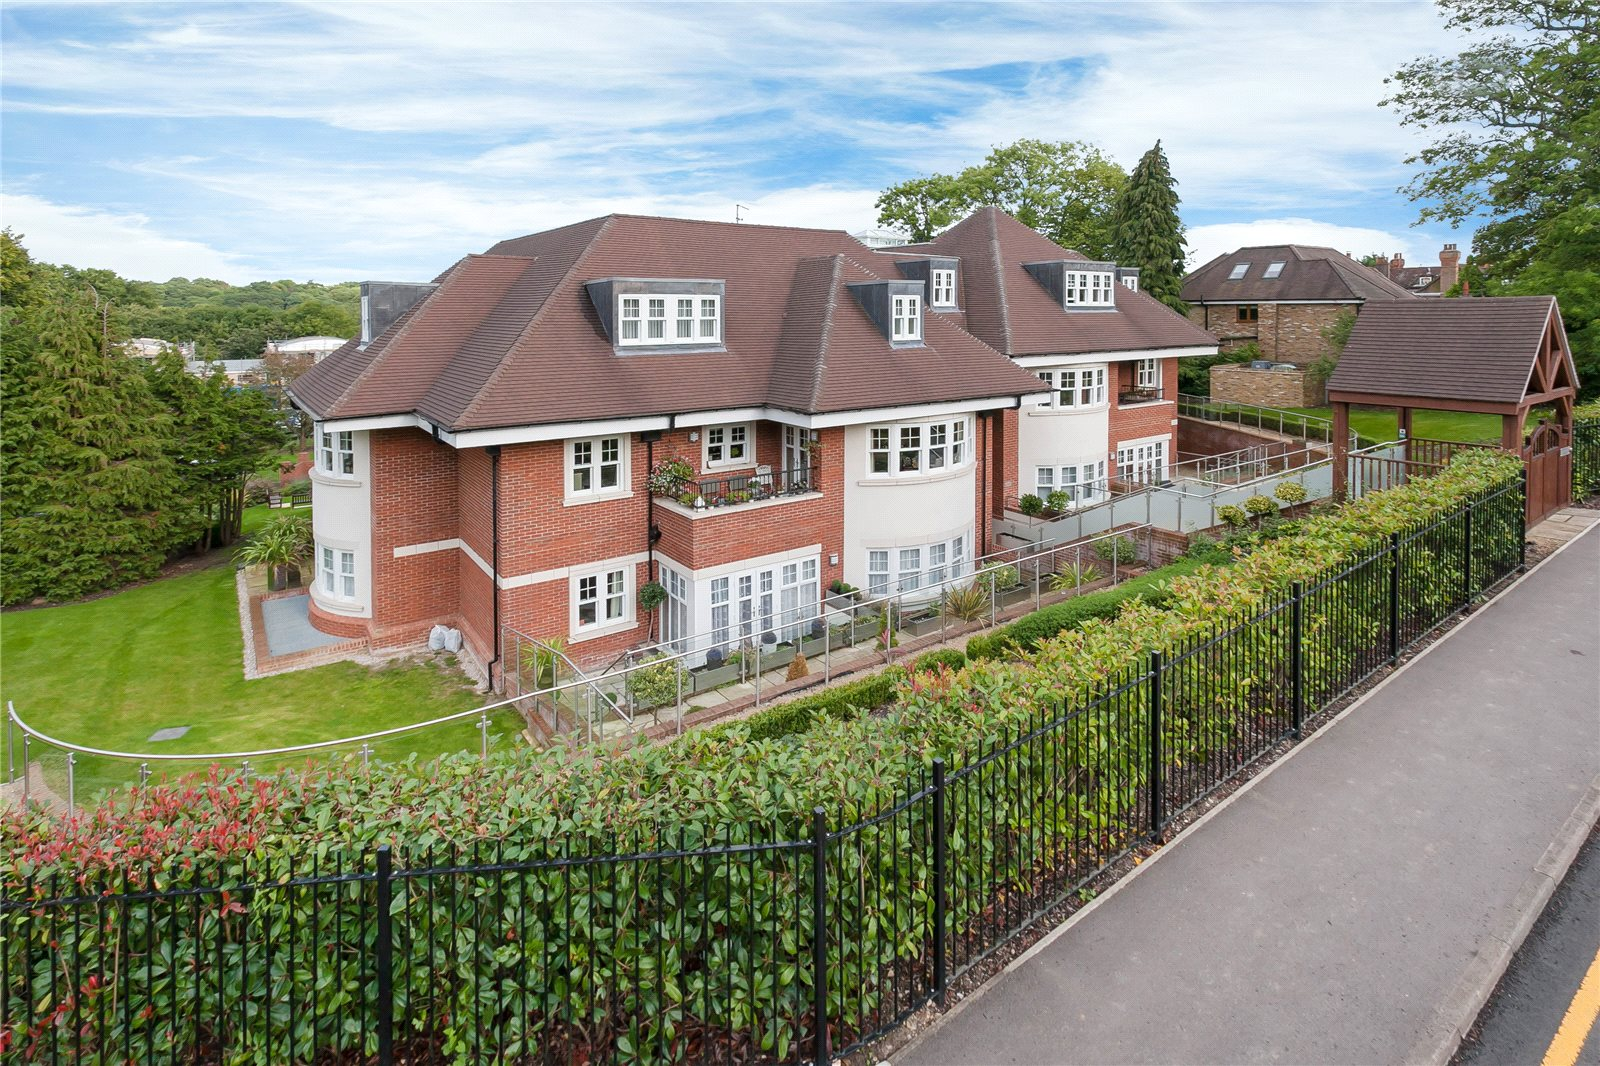 διαμερίσματα για την Πώληση στο Baytrees, 20 South Park View, Gerrards Cross, Buckinghamshire, SL9 Gerrards Cross, Αγγλια